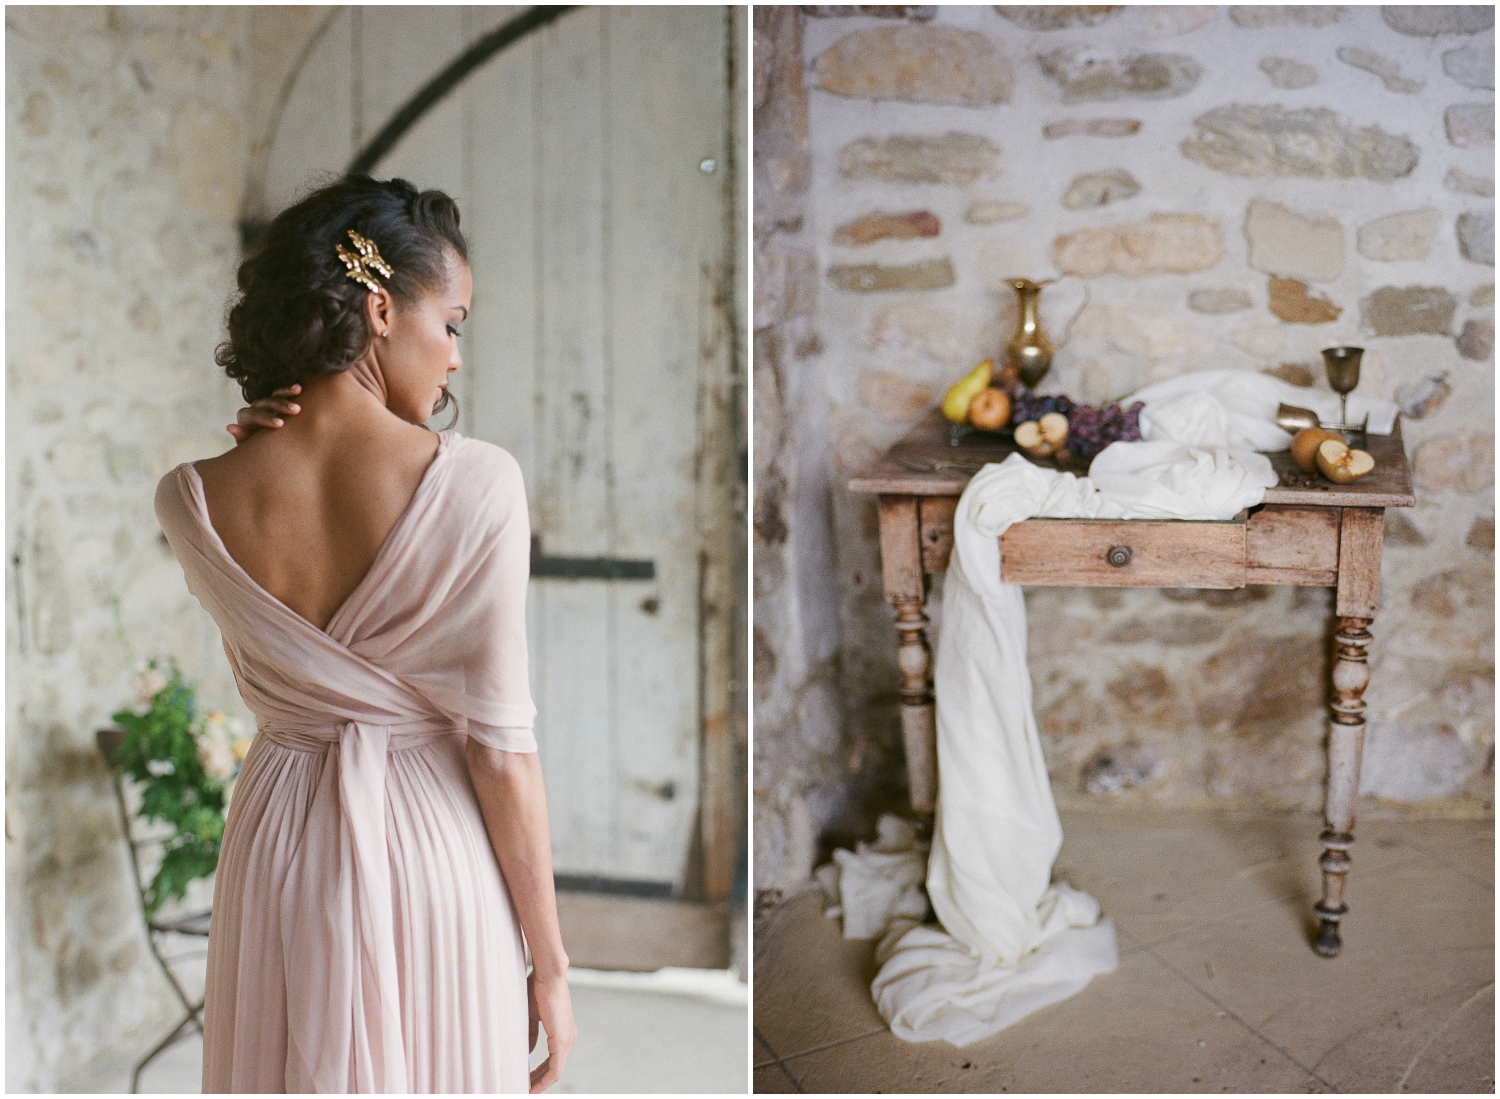 Gorgeous blush dress for brides by Leila Hafzi